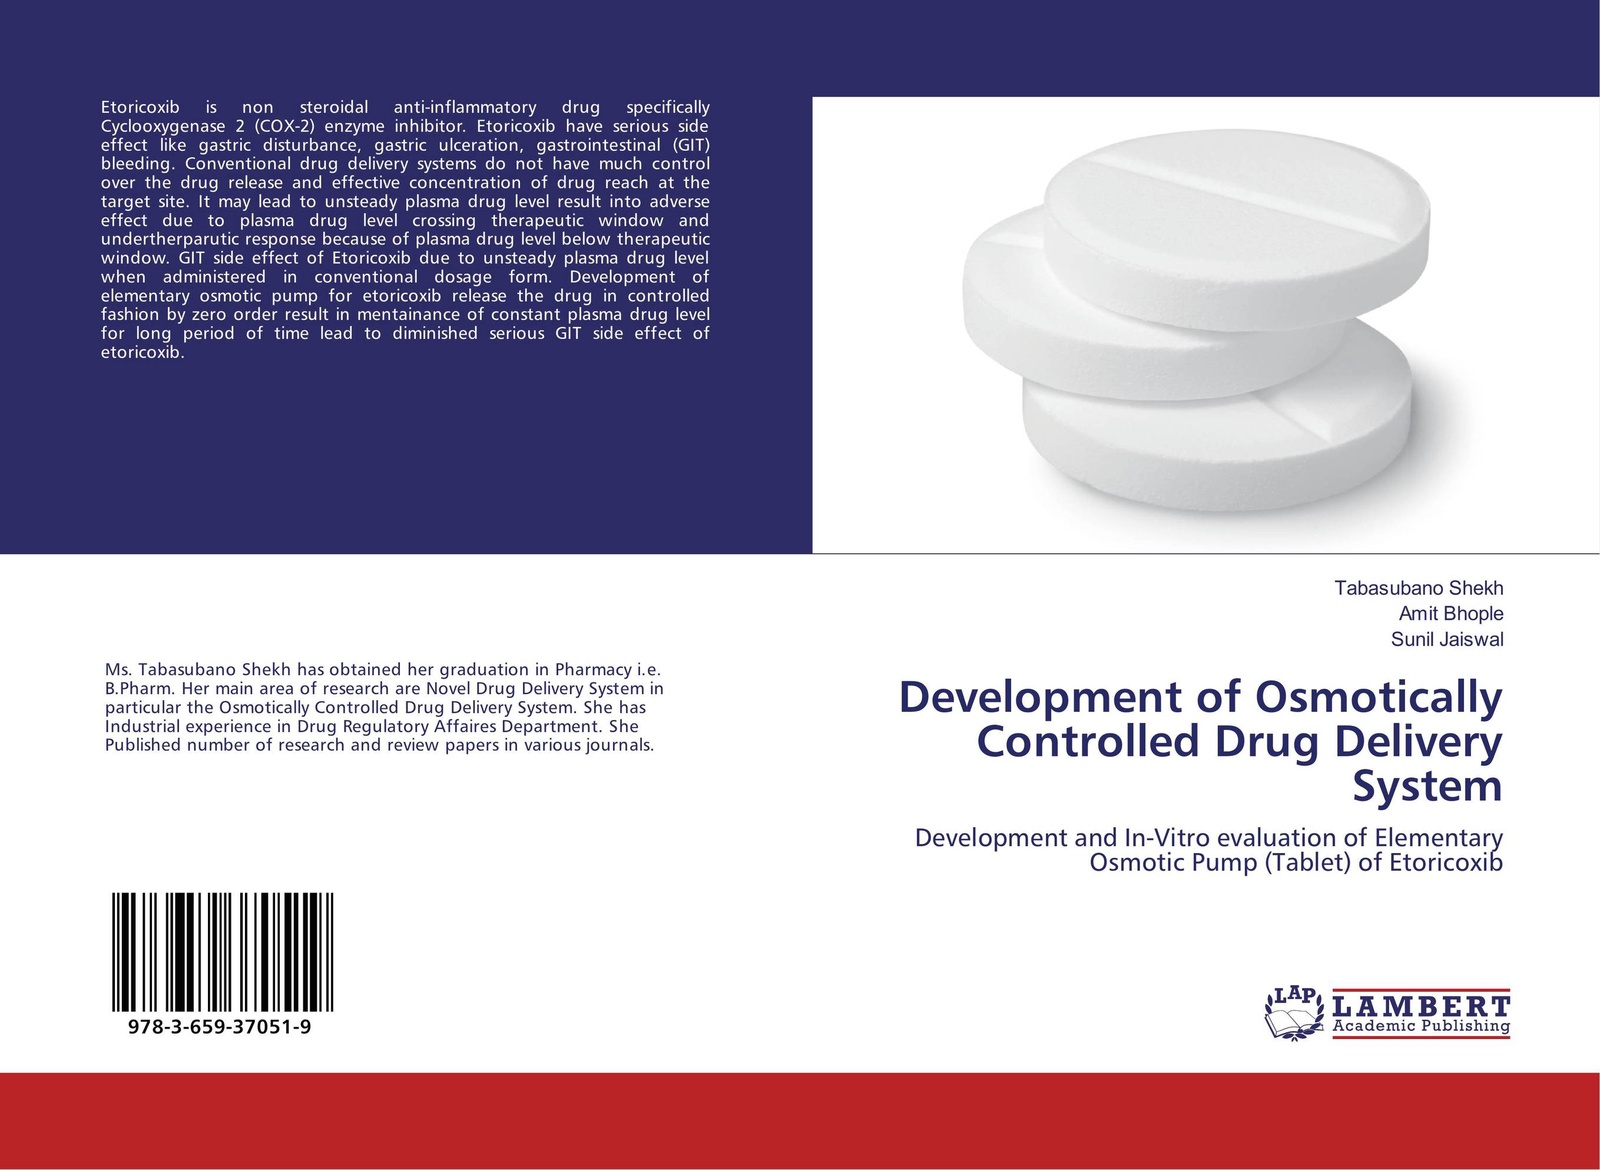 Tabasubano Shekh,Amit Bhople and Sunil Jaiswal Development of Osmotically Controlled Drug Delivery System zhou honghui drug drug interactions for therapeutic biologics